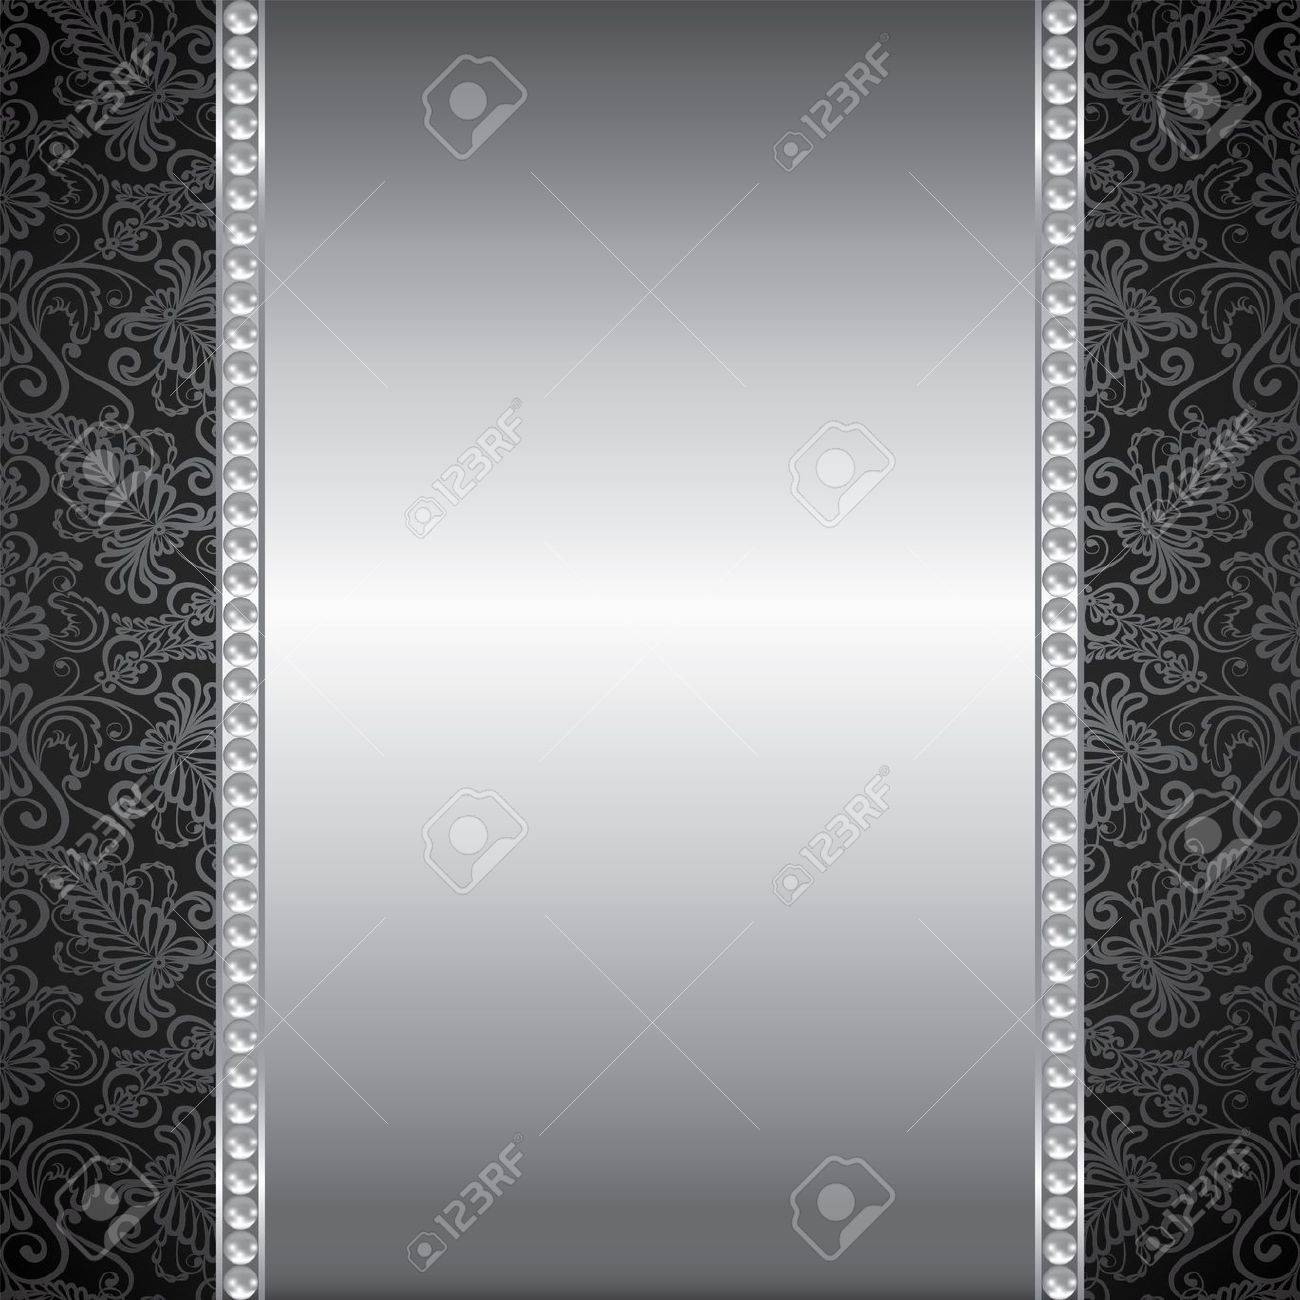 background with perl and silver frame royalty free cliparts